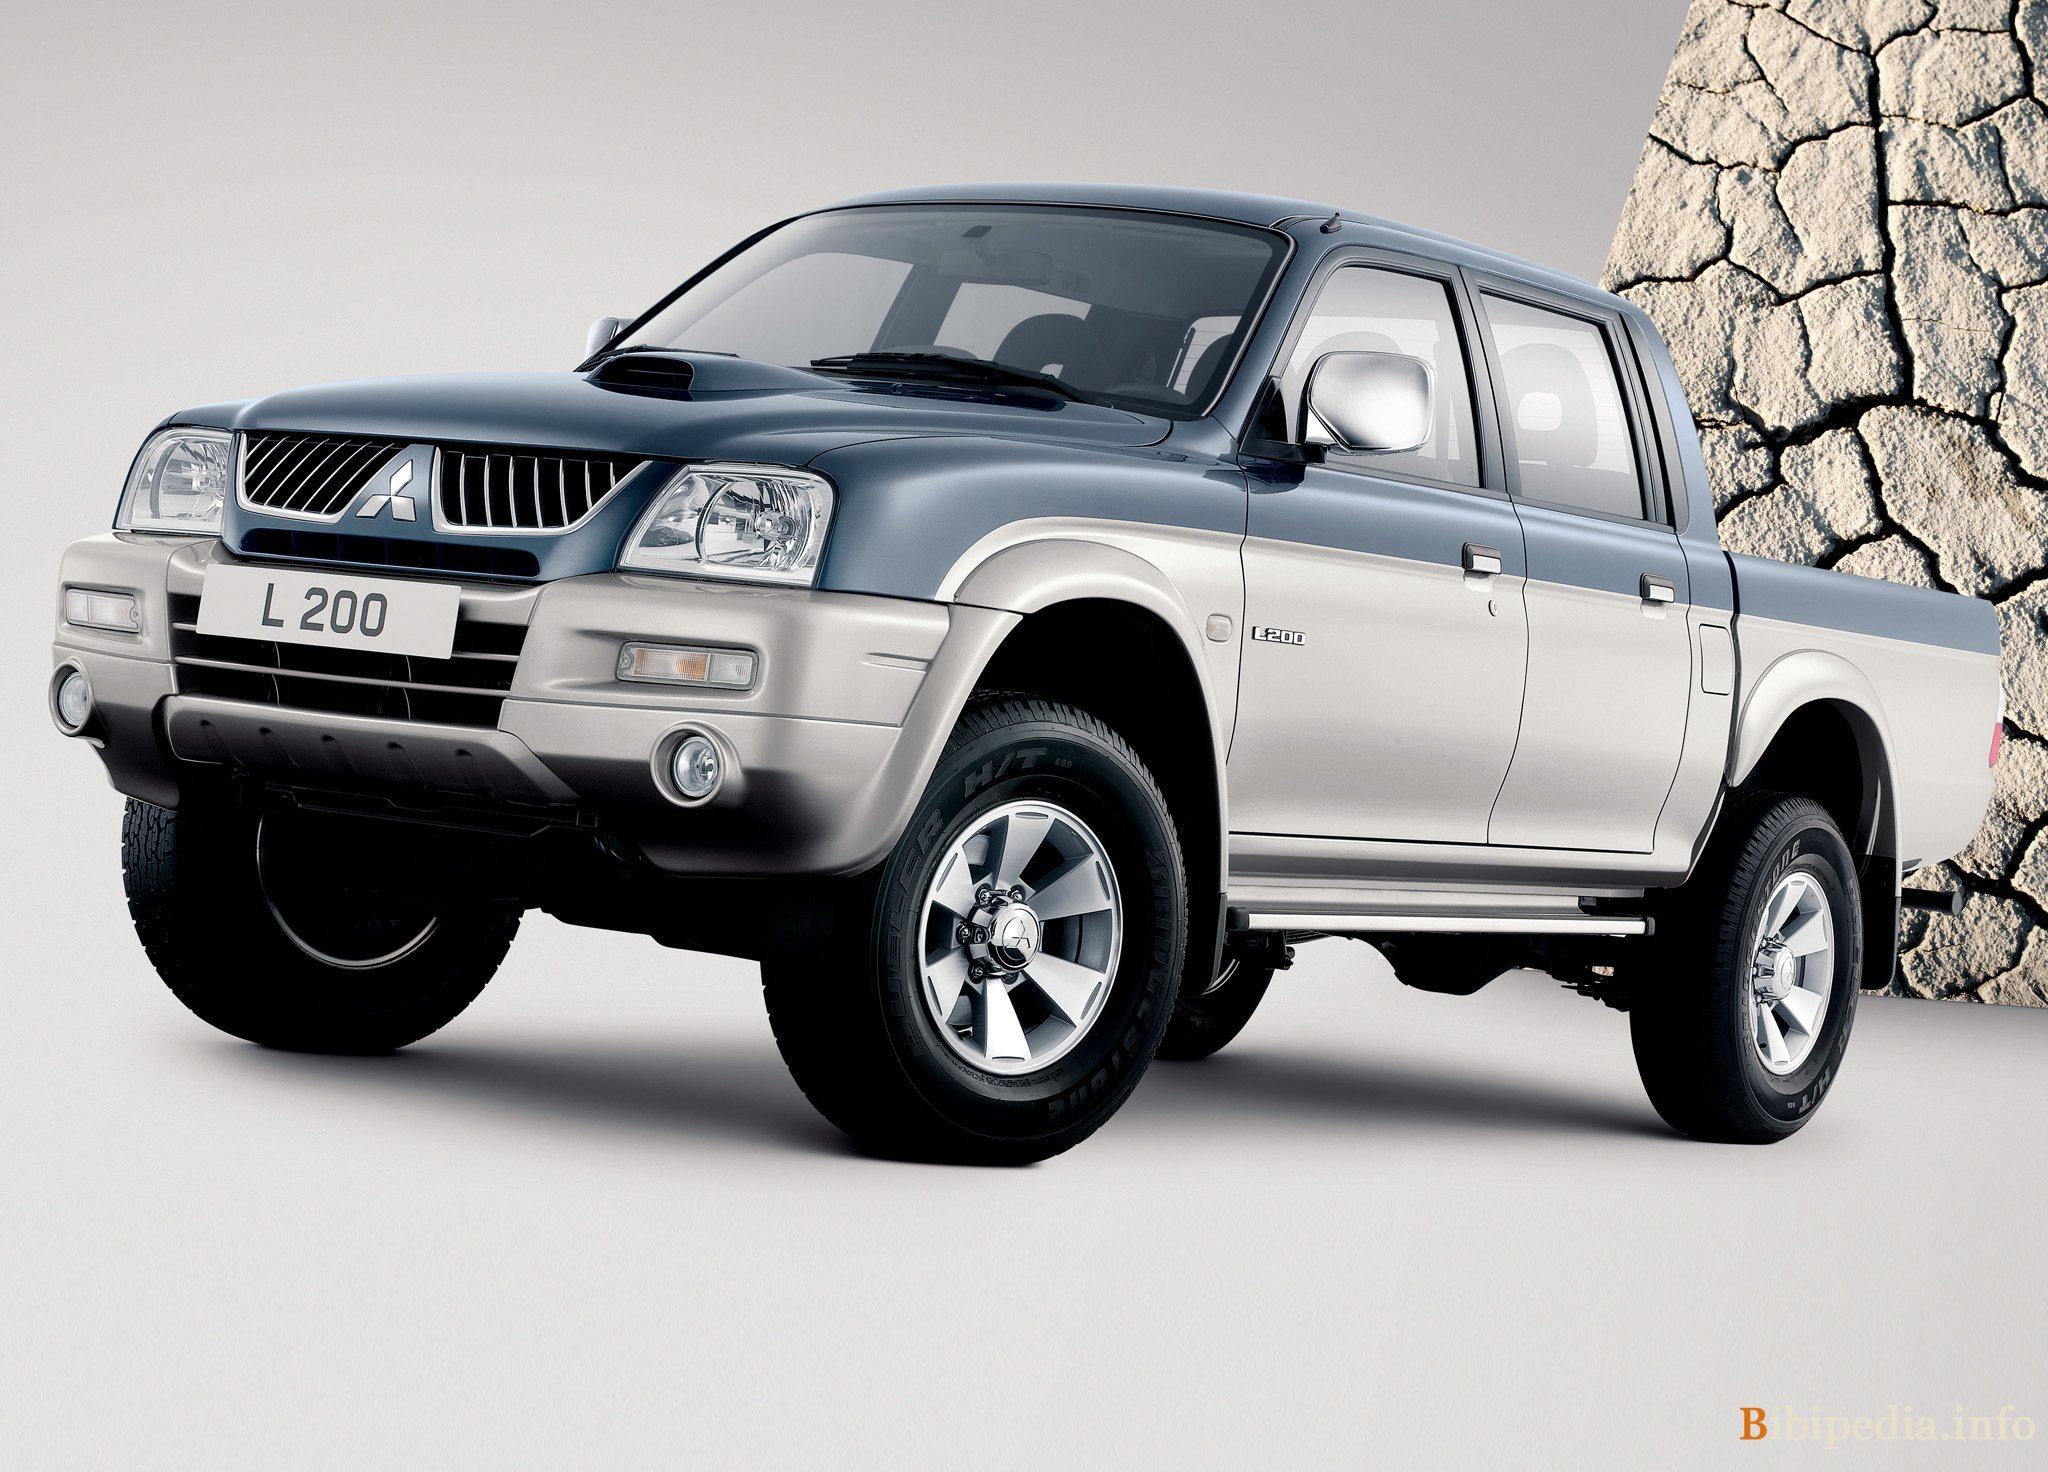 2005 Mitsubishi L200 – pictures, information and specs - Auto-Database.com